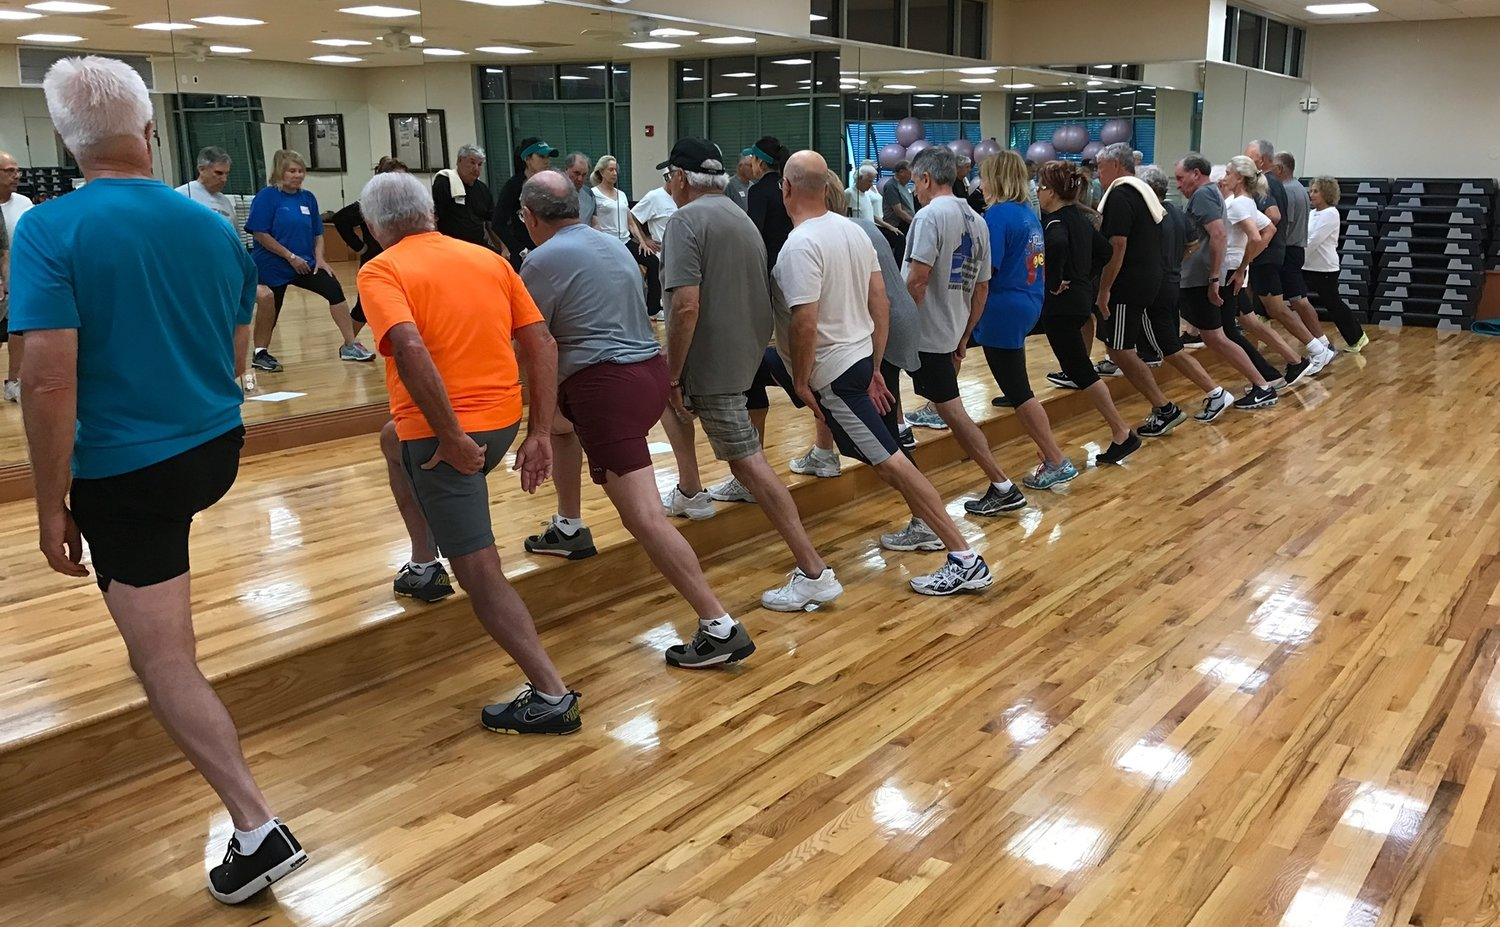 MEMBERS AT A LOCAL COUNTRY CLUB PARTICIPATING IN THE WEEKLY GOLF FITNESS CLASS